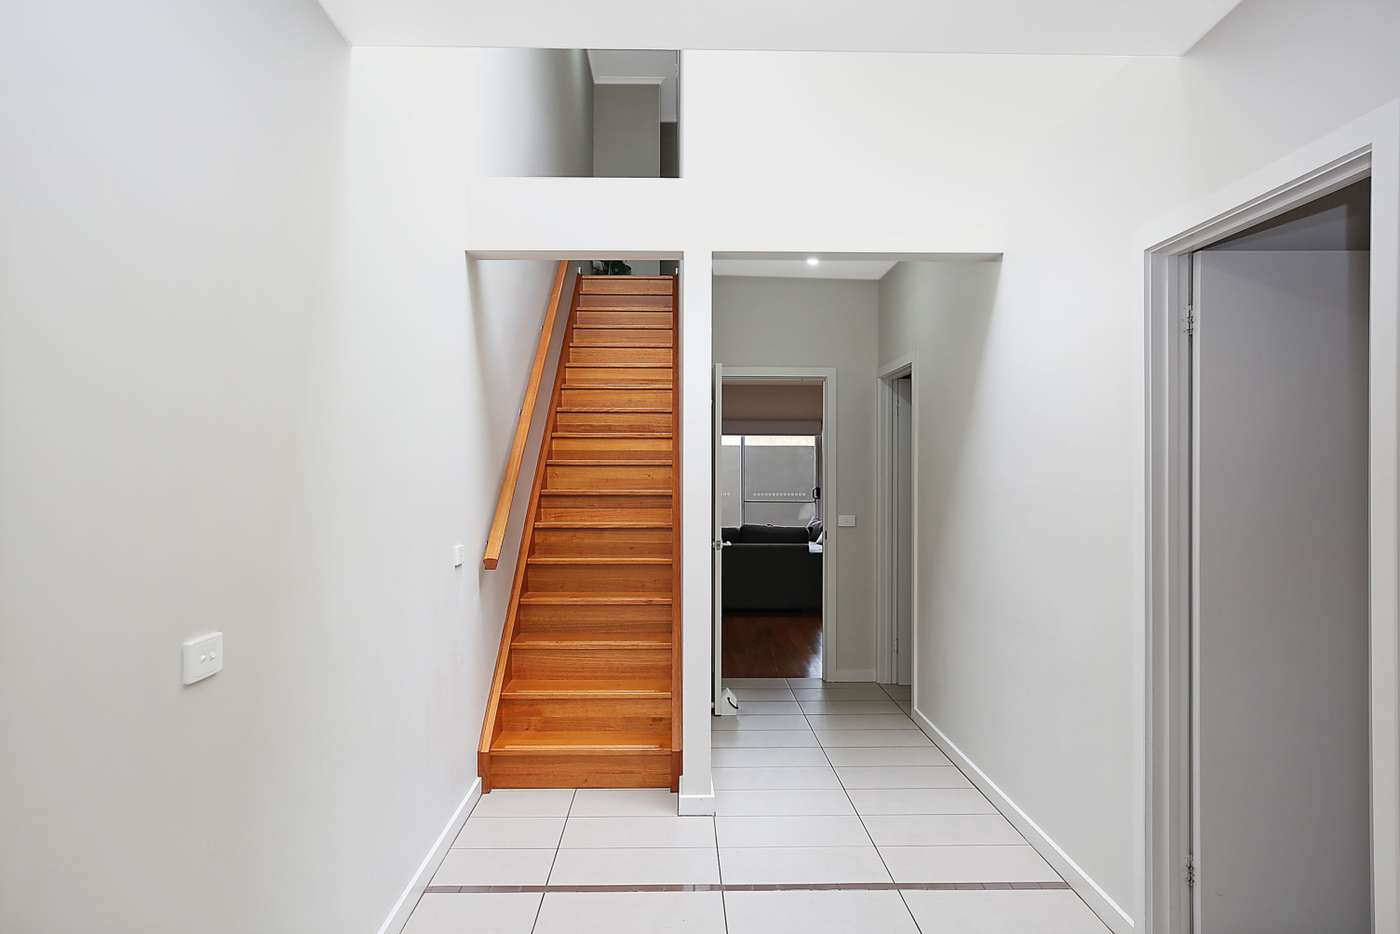 Seventh view of Homely house listing, 2/5 Brooke Street, Camperdown VIC 3260